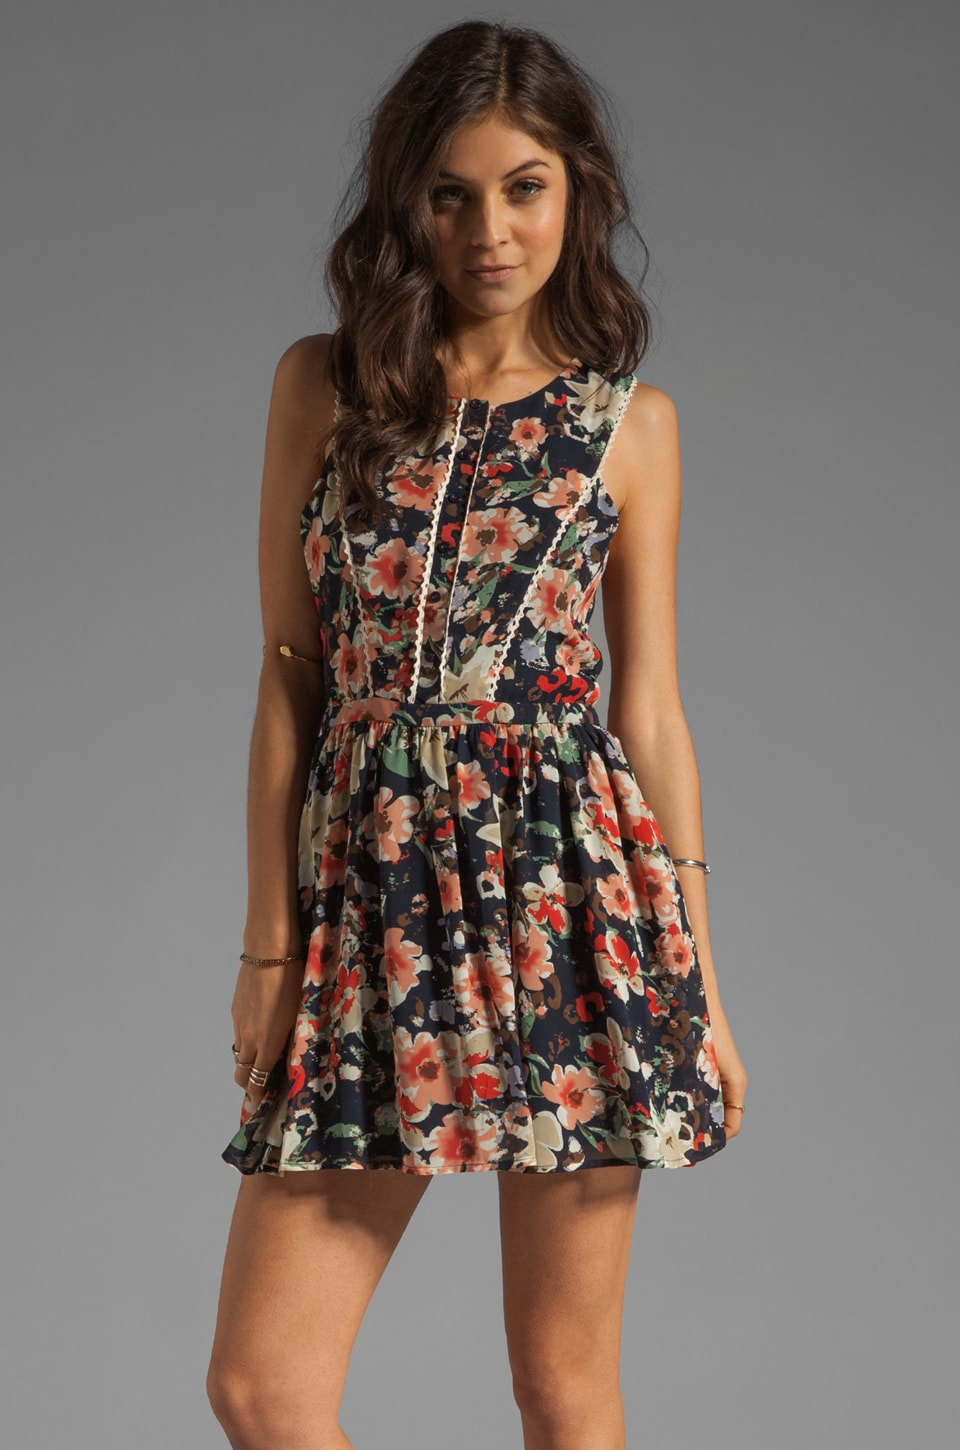 Lucca Couture Floral Tank Mini Dress in Navy/Blush